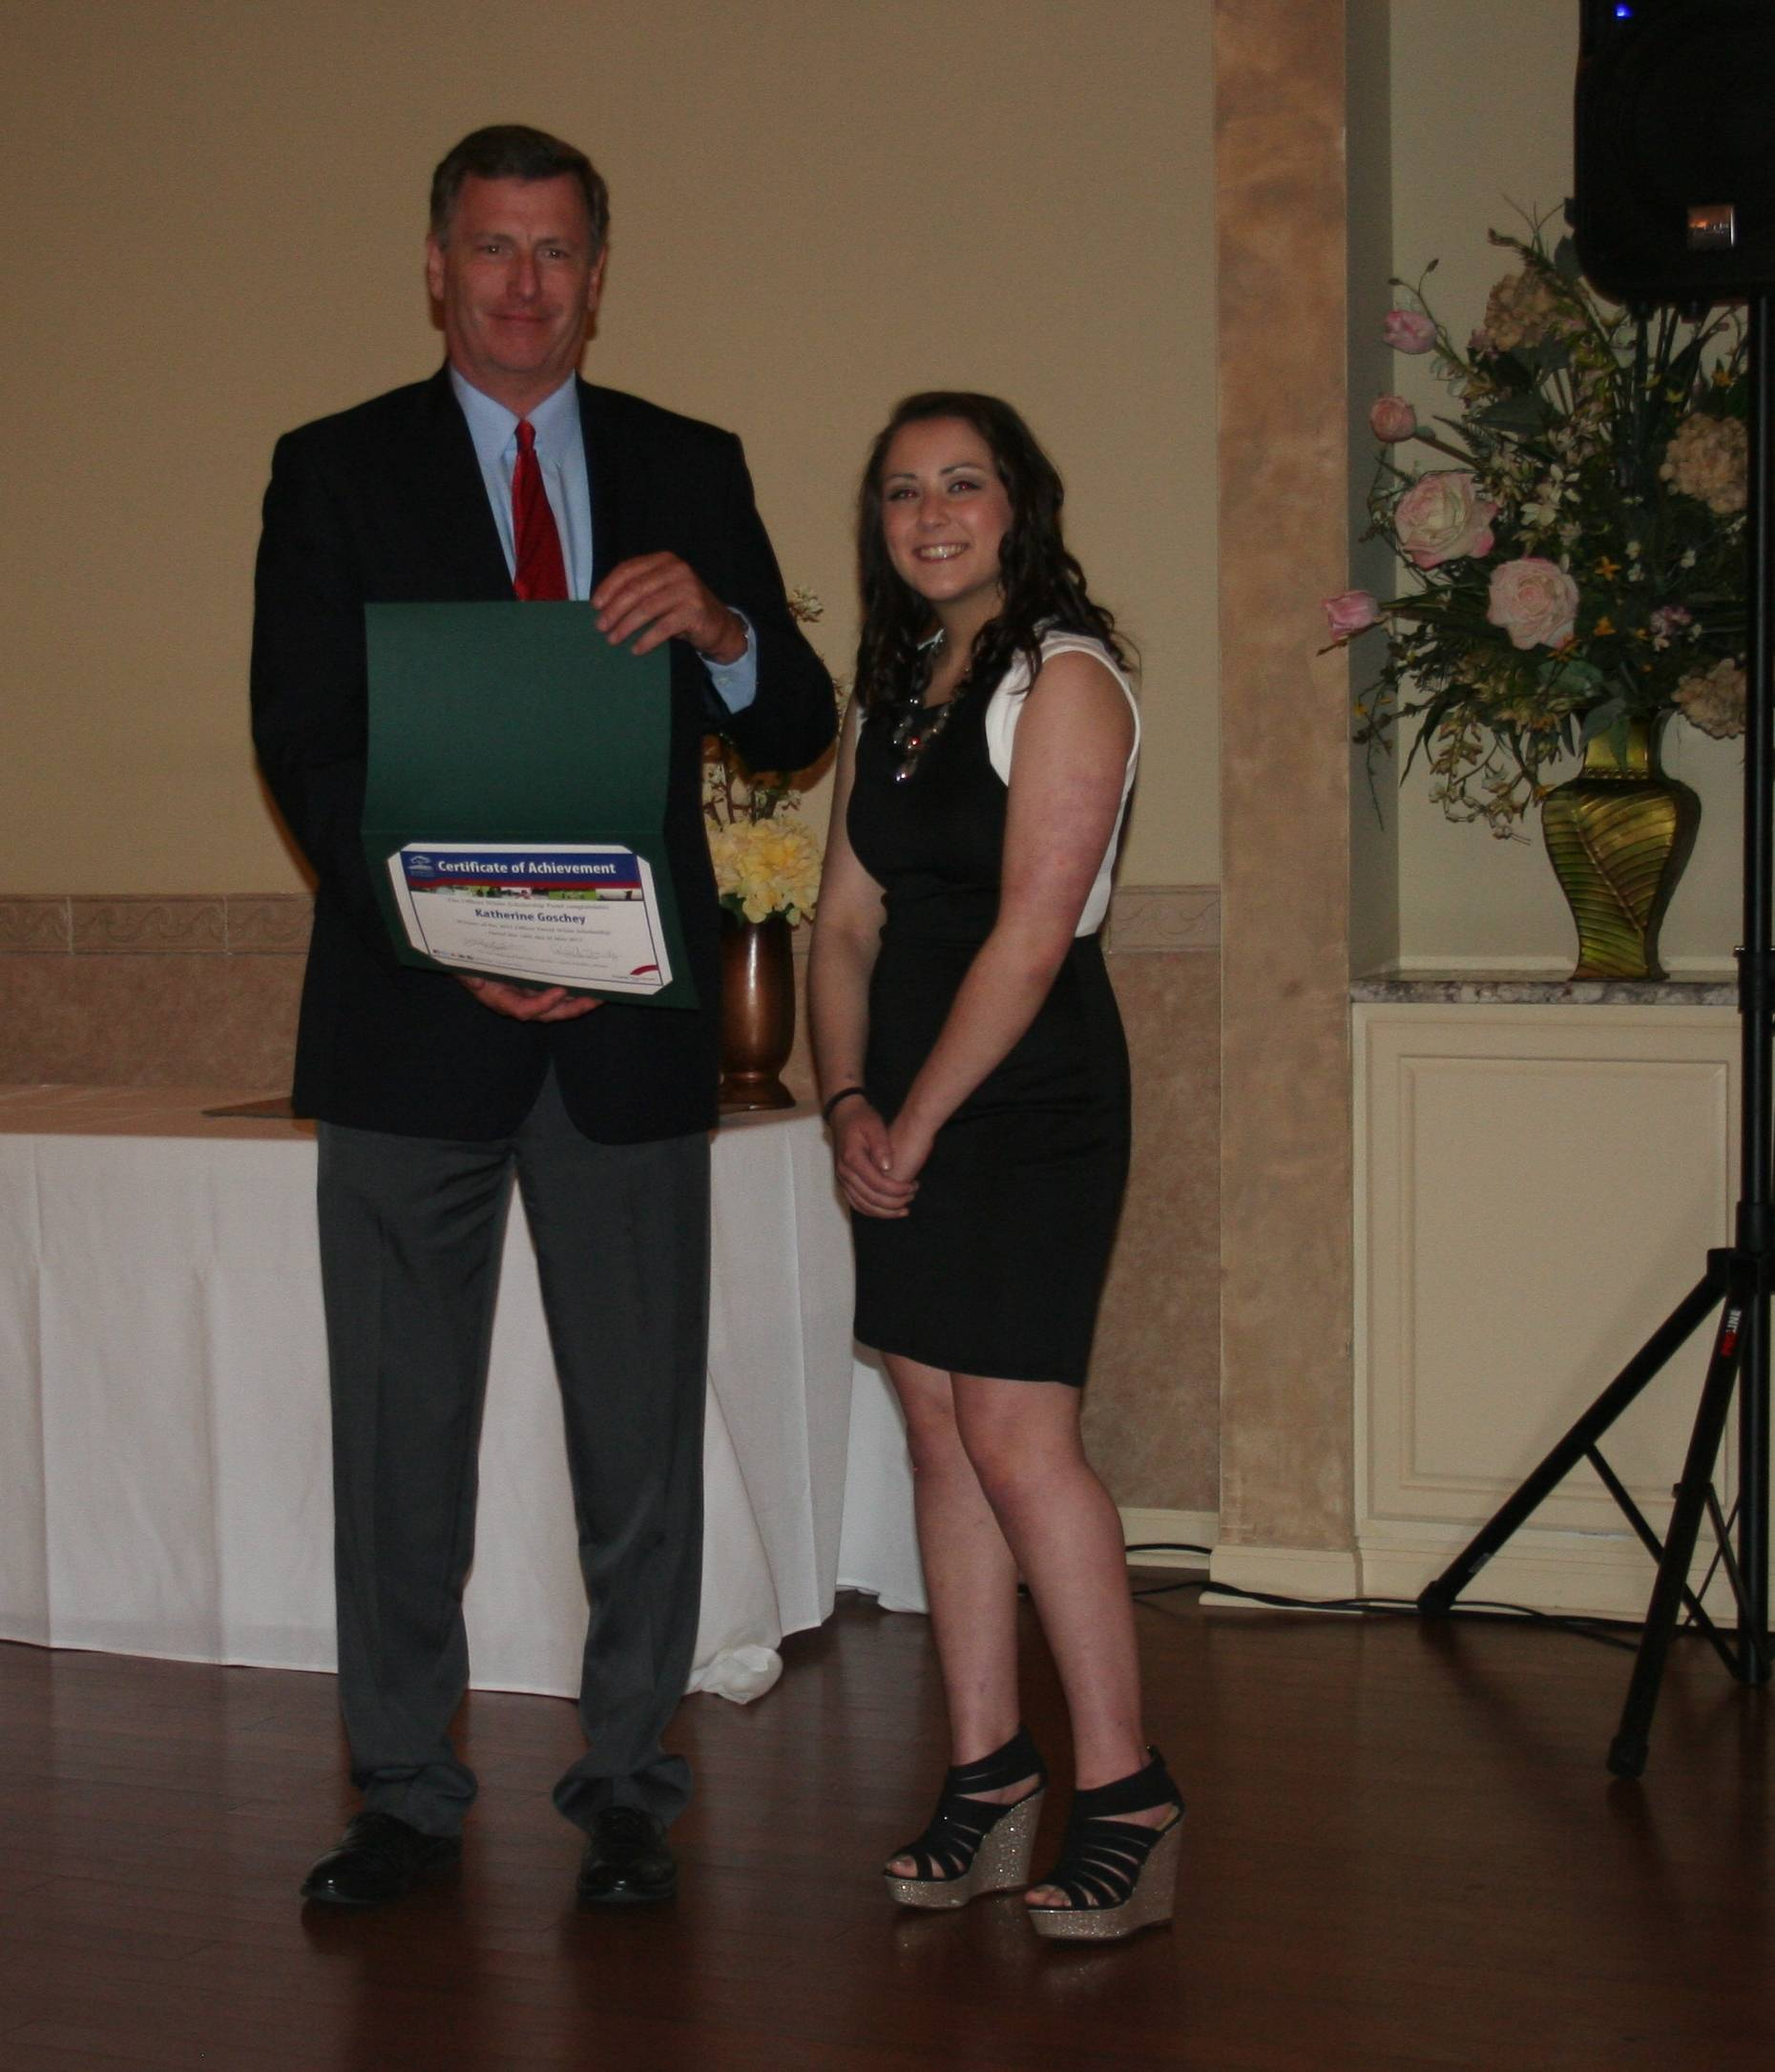 Officer David White presents the 2015 scholarship award toKatherine Goschey at the CAPS dinner, May 14, 2015 Naperville Park District